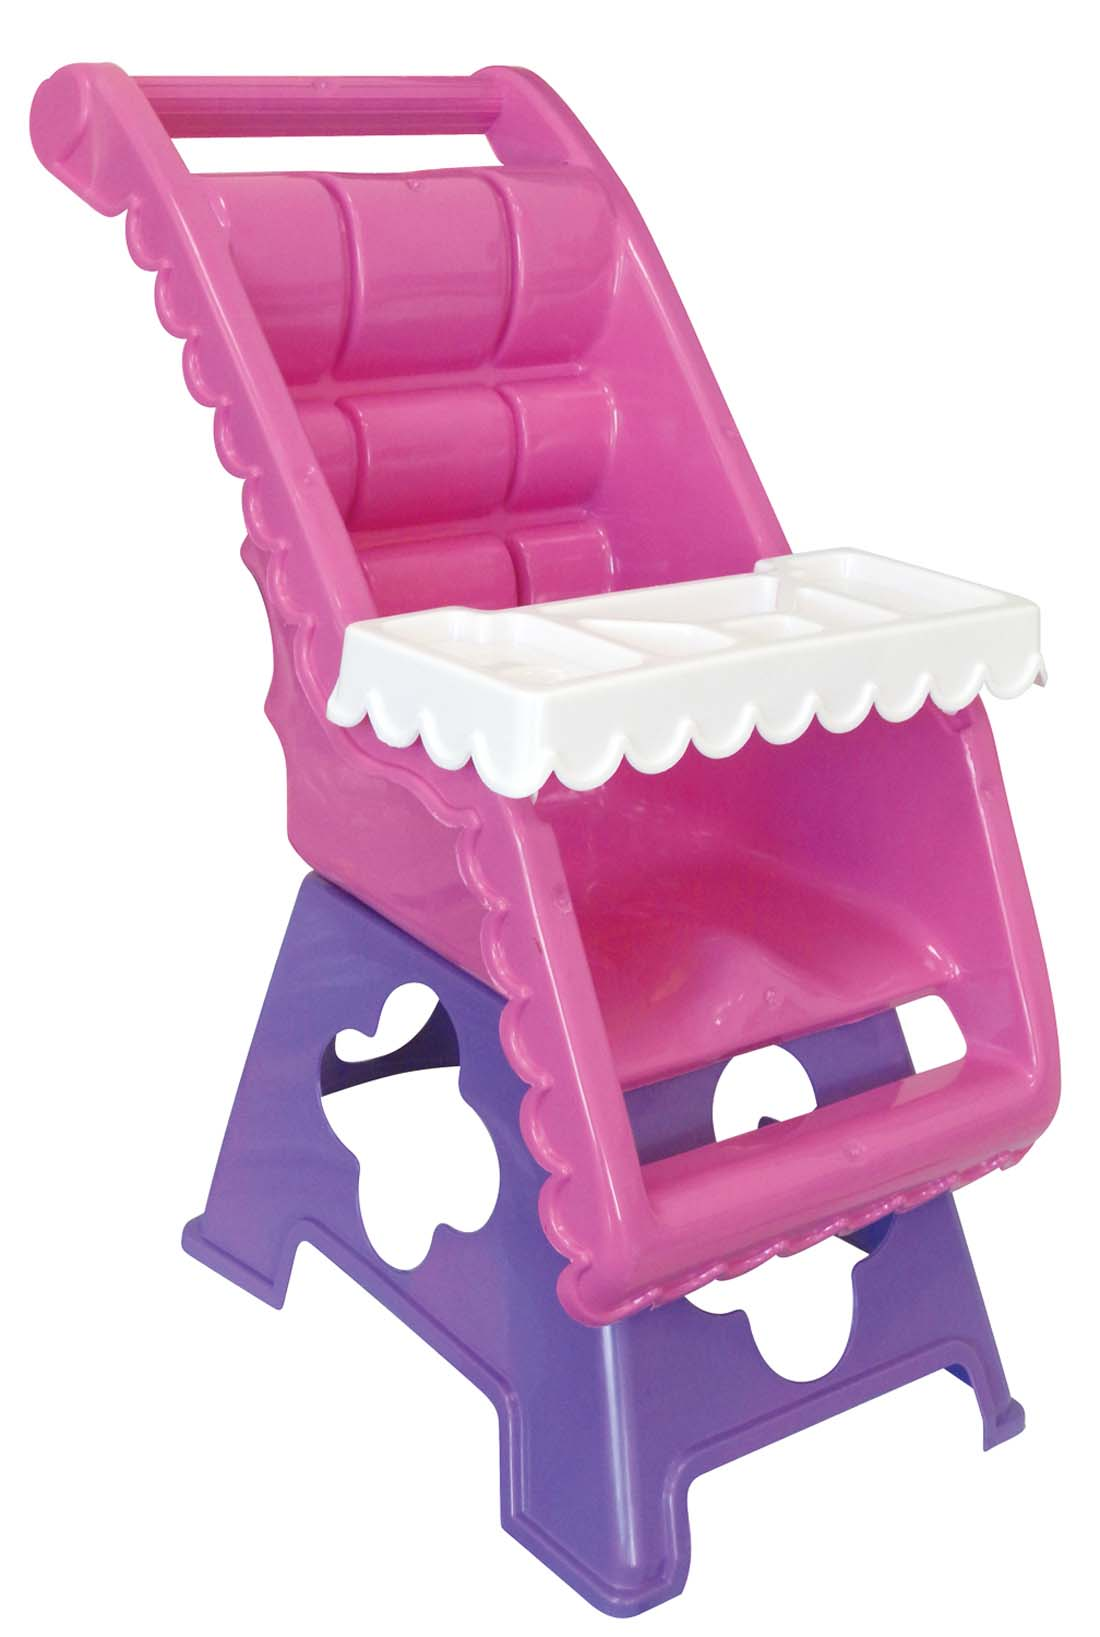 View DOLL HIGH CHAIR FITS DOLLS UP TO 18 INCHES